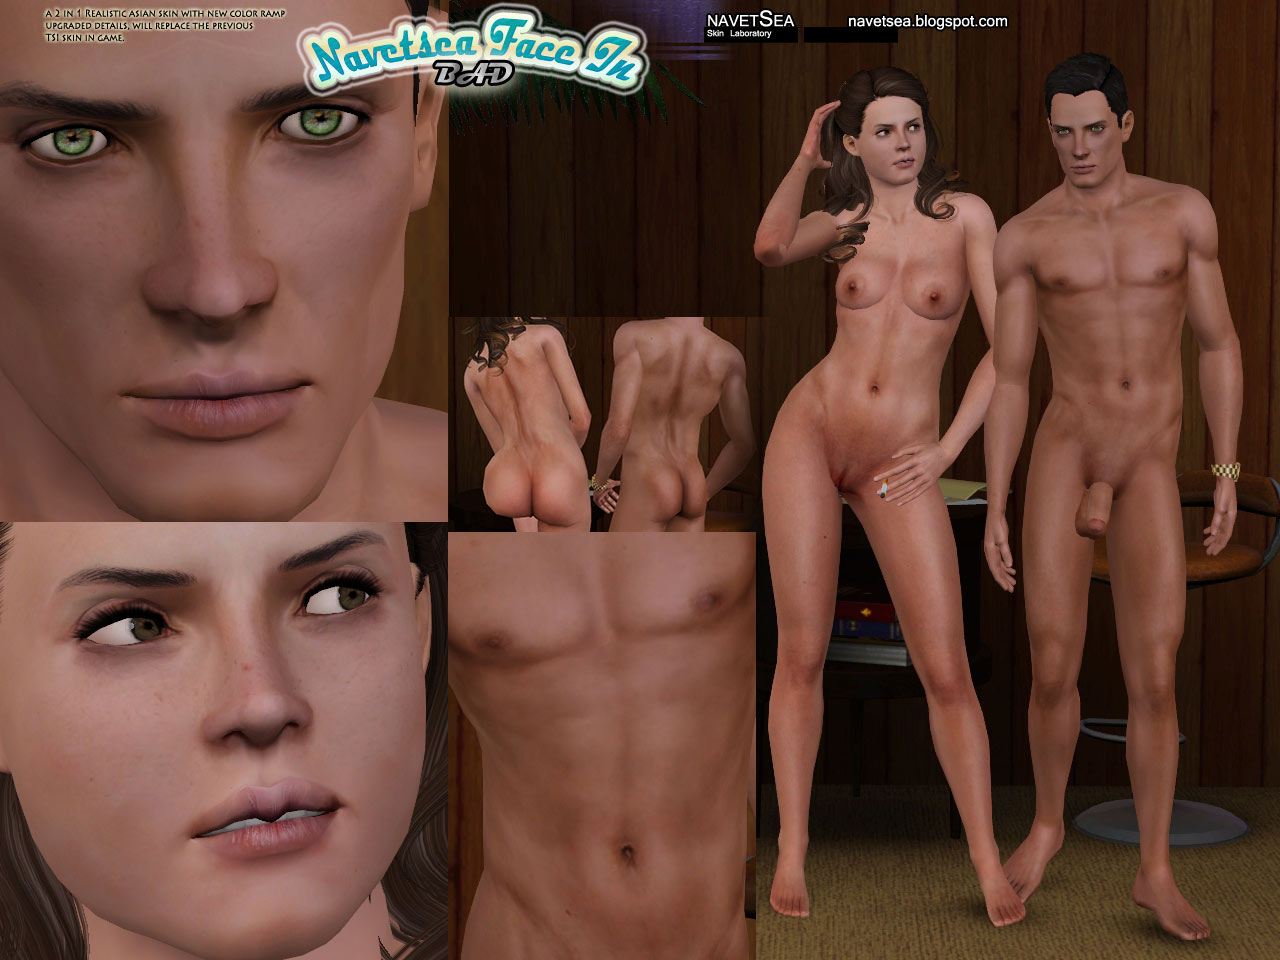 Sims 3 uncensor mod nude videos